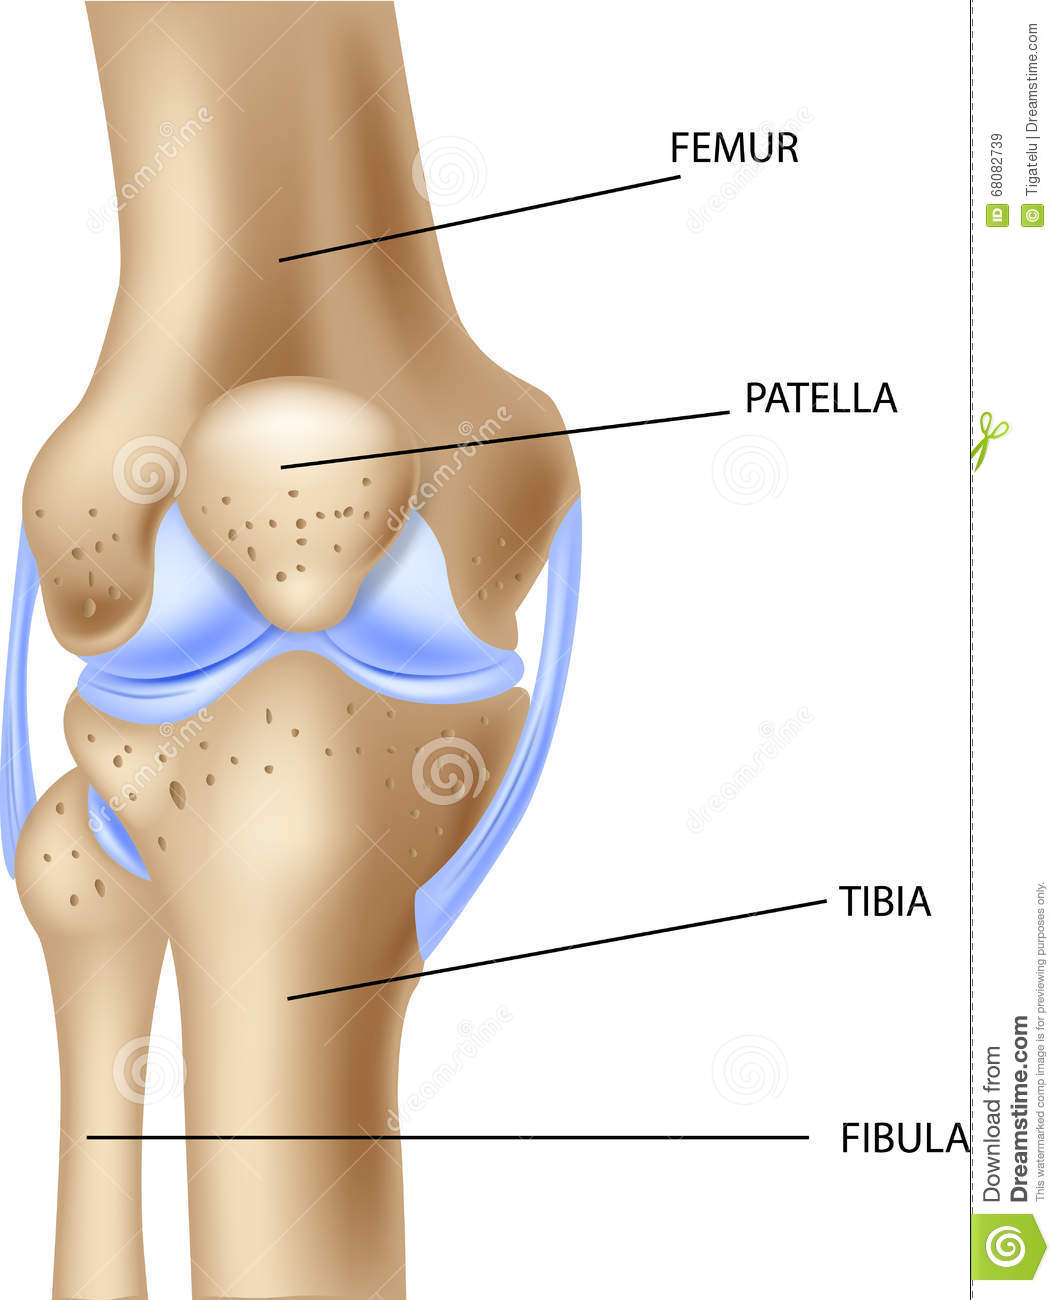 Cartoon Illustration Of The Human Knee Joint Anatomy Stock Vector